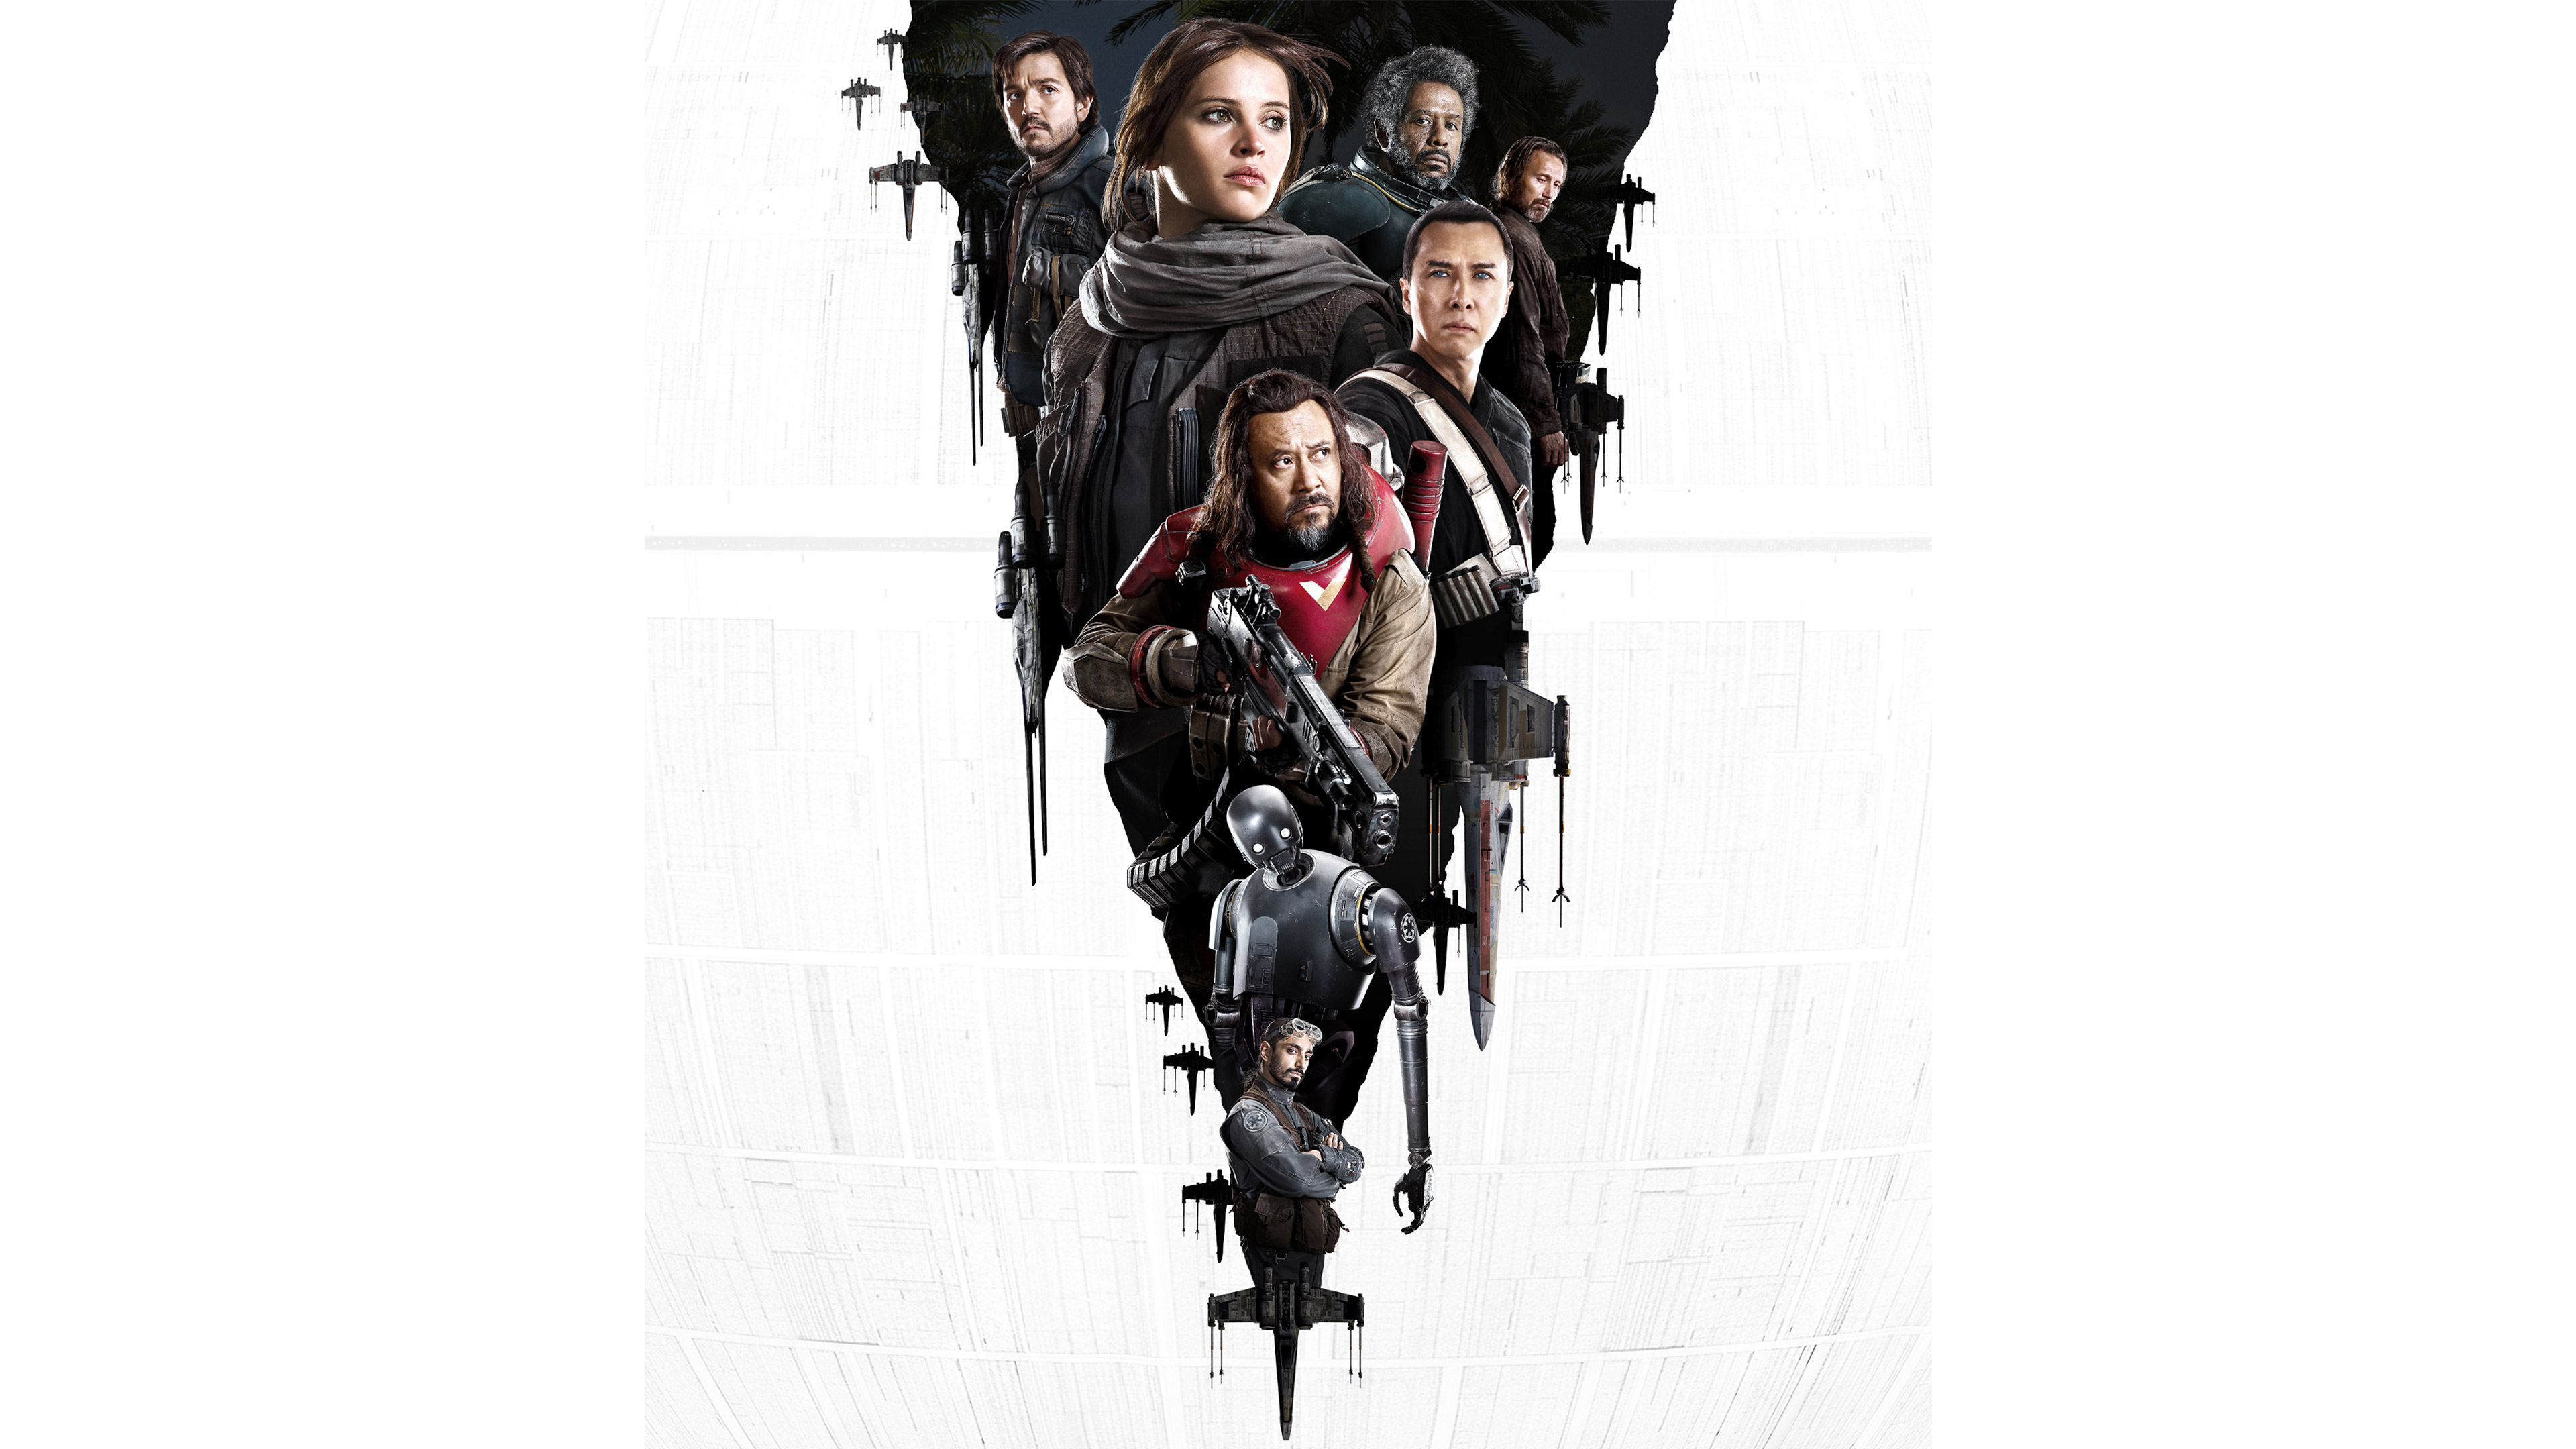 rogue one a star wars story imax 1536400508 - Rogue One A Star Wars Story Imax - star wars wallpapers, rogue one a star wars story wallpapers, poster wallpapers, movies wallpapers, 4k-wallpapers, 2016 movies wallpapers